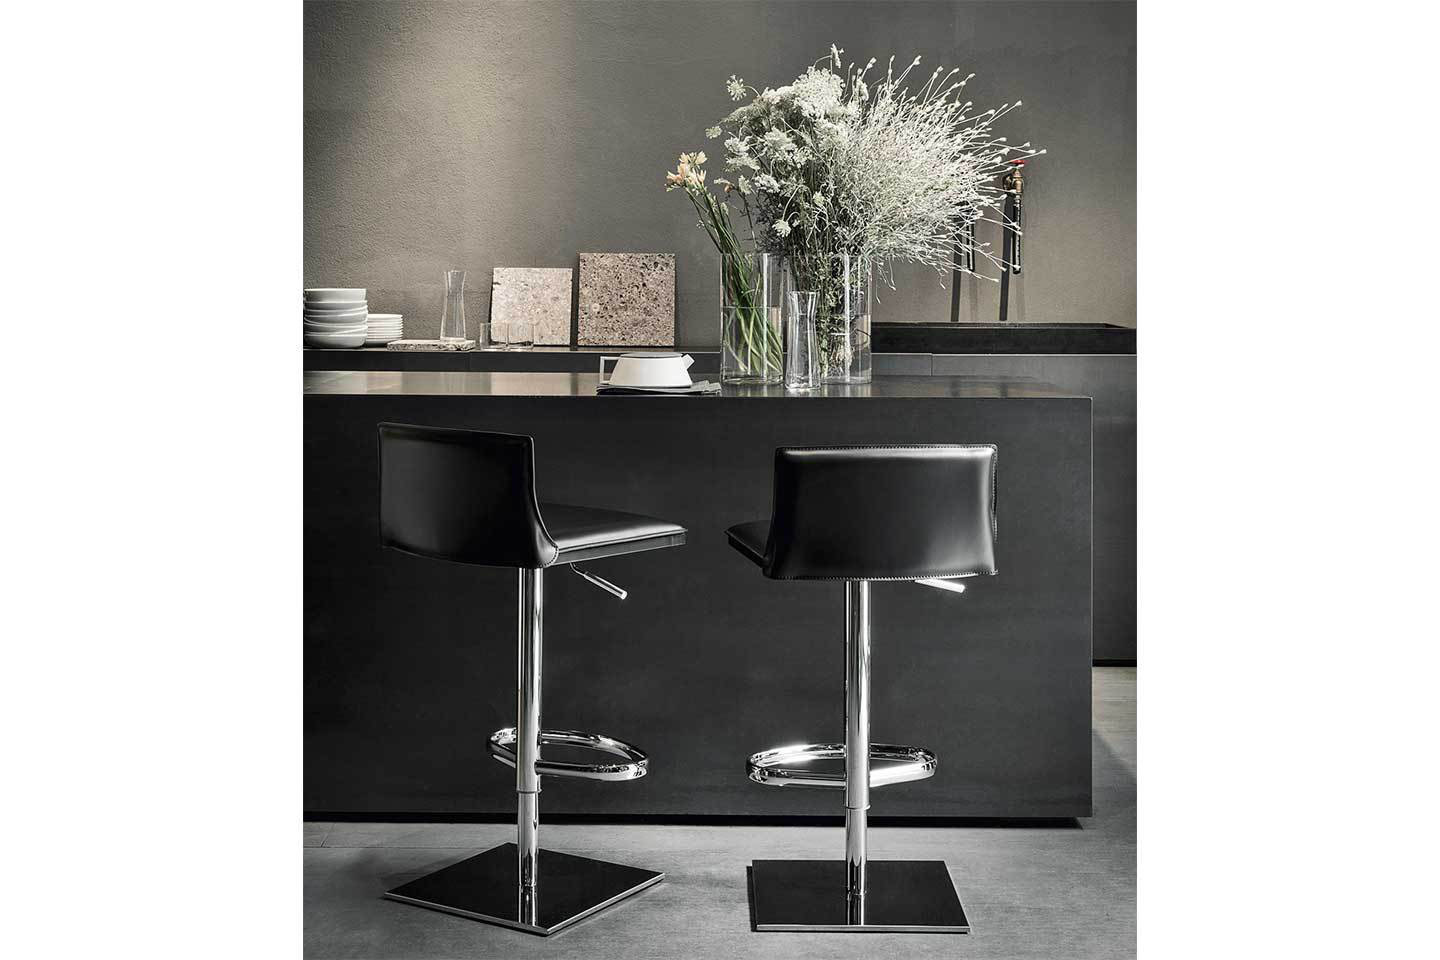 Mobili Italia_Frag LATINA GP counter stool